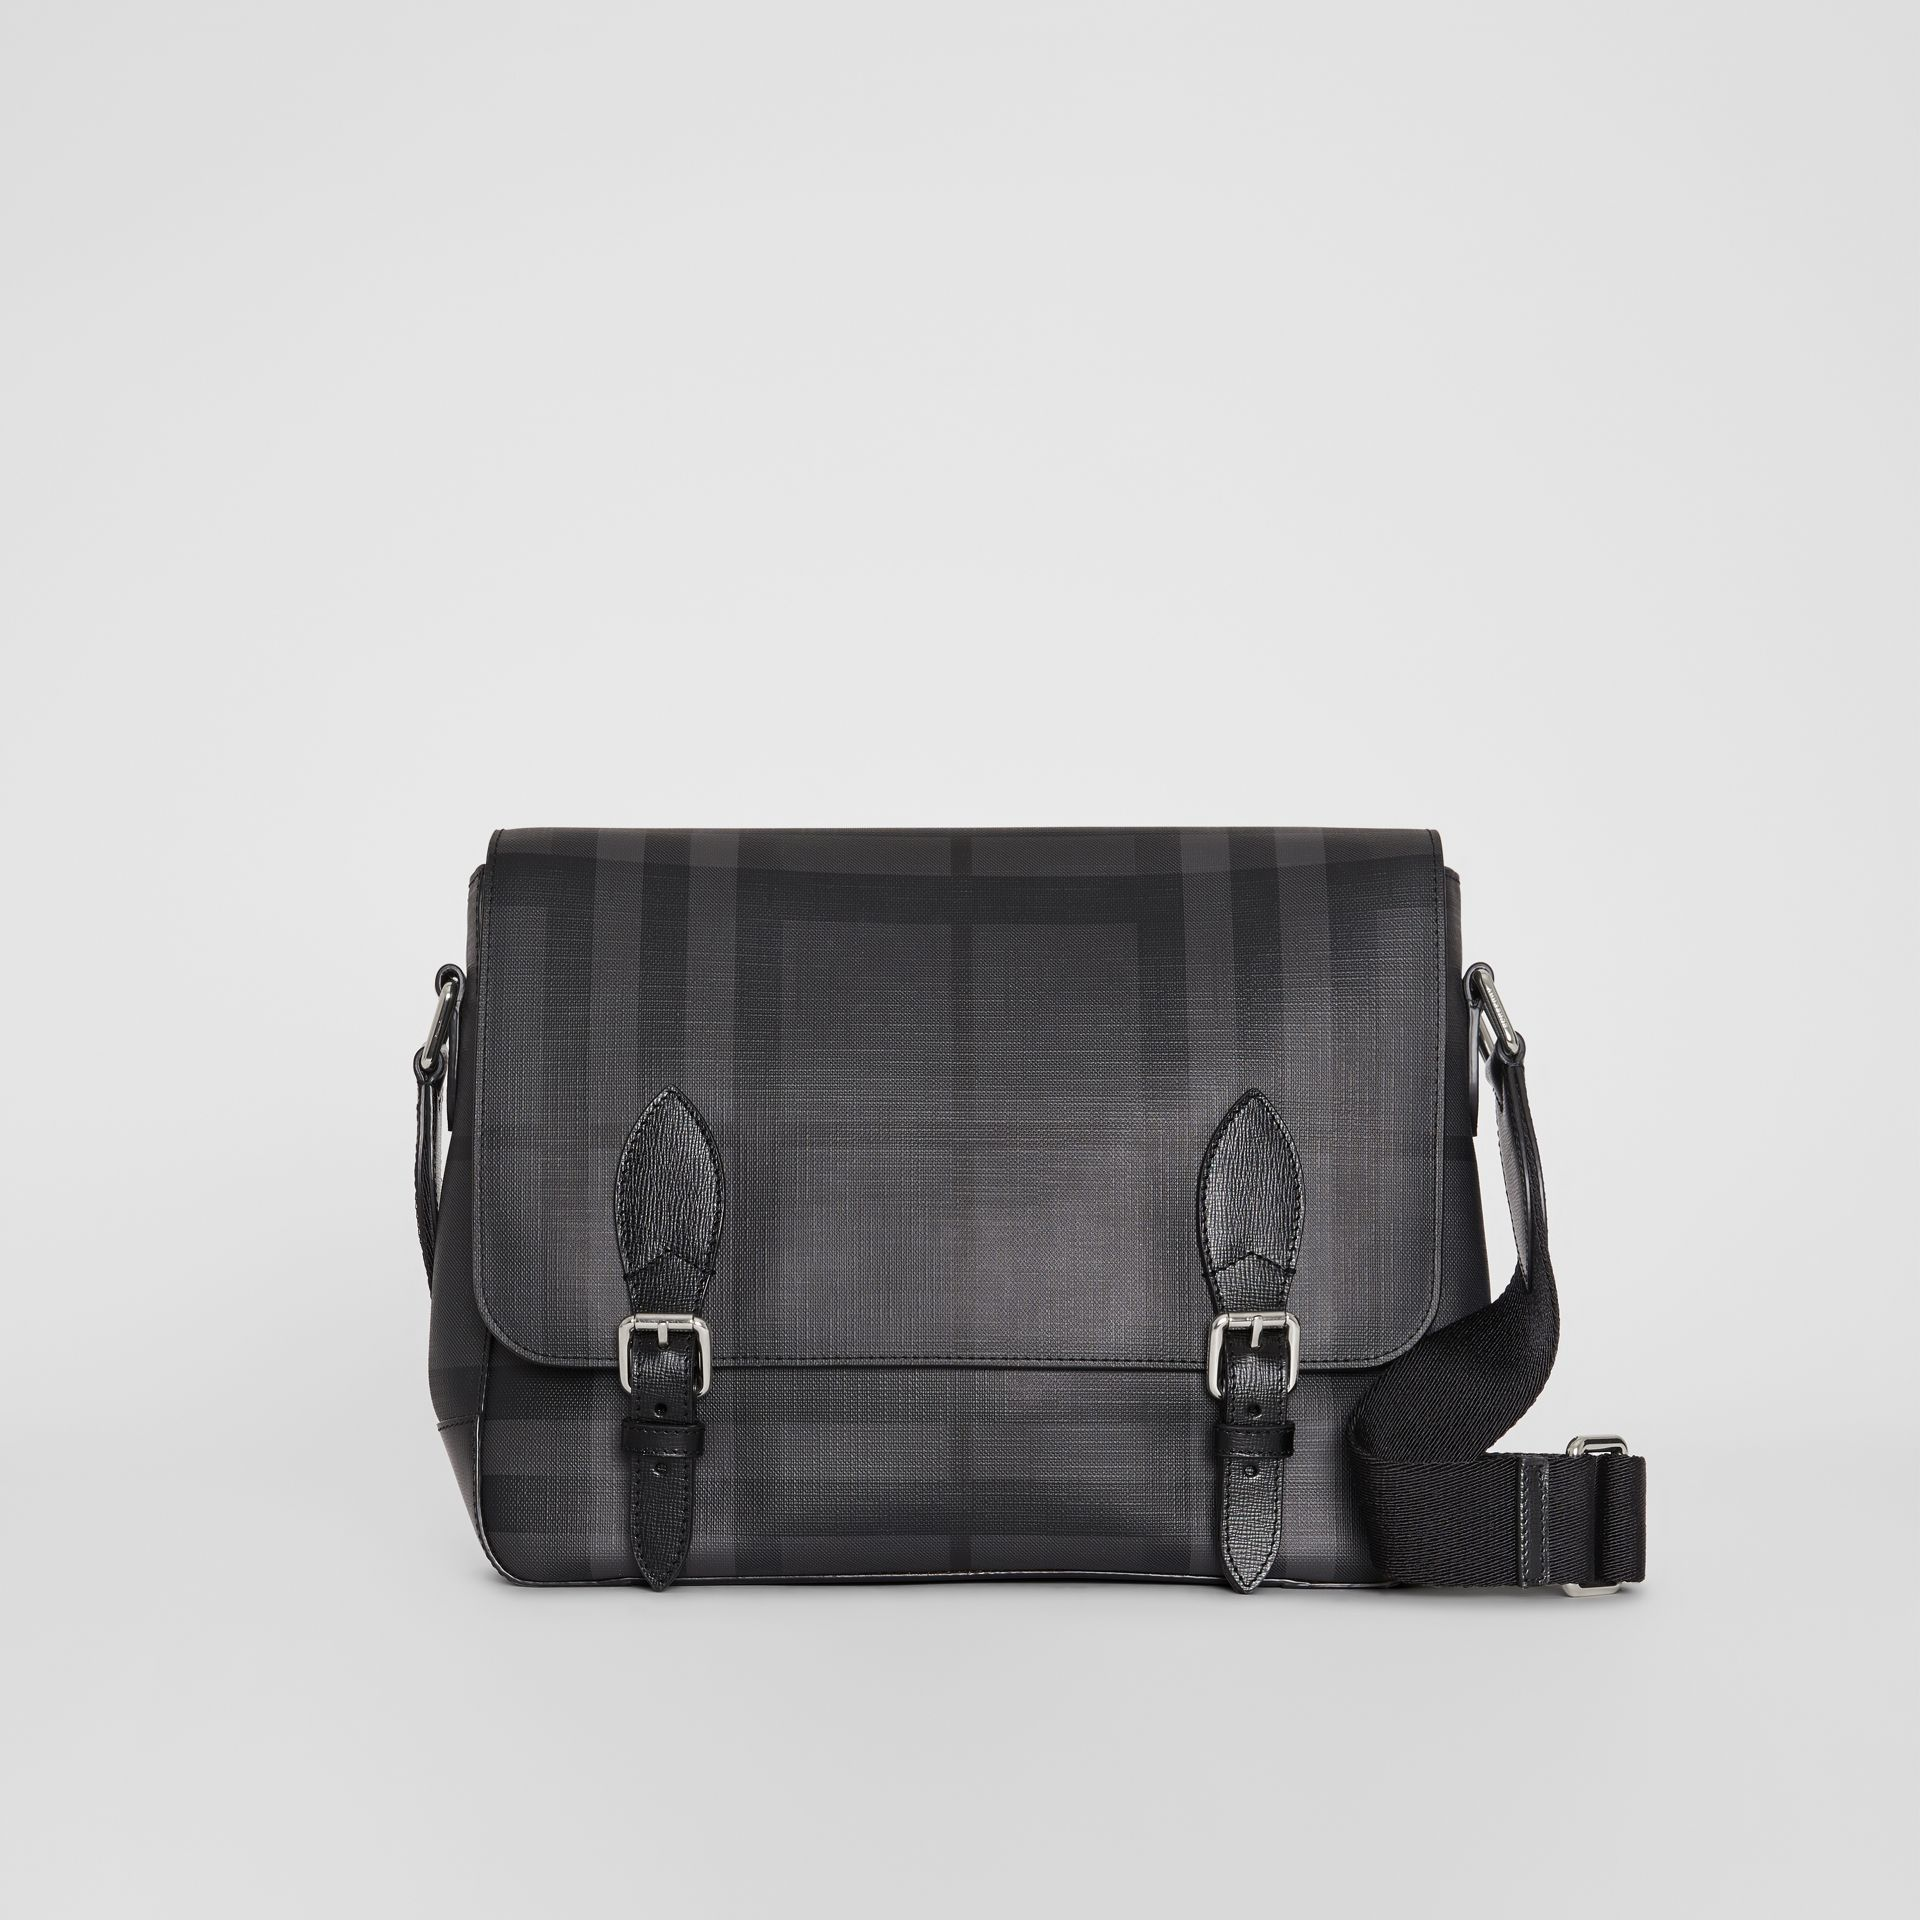 Medium Leather Trim London Check Messenger Bag in Charcoal/black - Men | Burberry Canada - gallery image 4